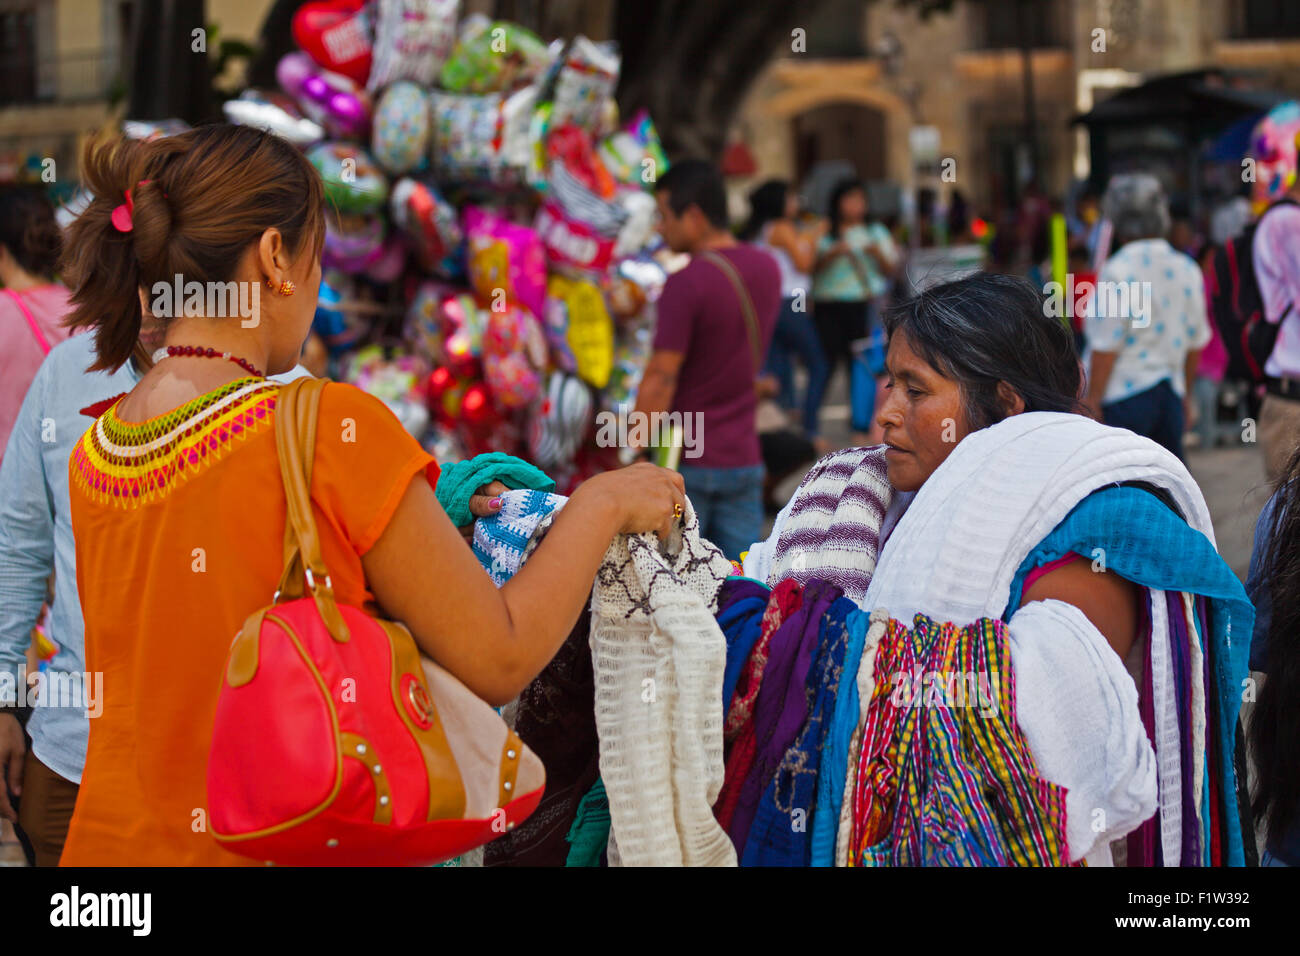 Buying a shawl in the ZOCALO or central plaza - OAXACA, MEXICO - Stock Image